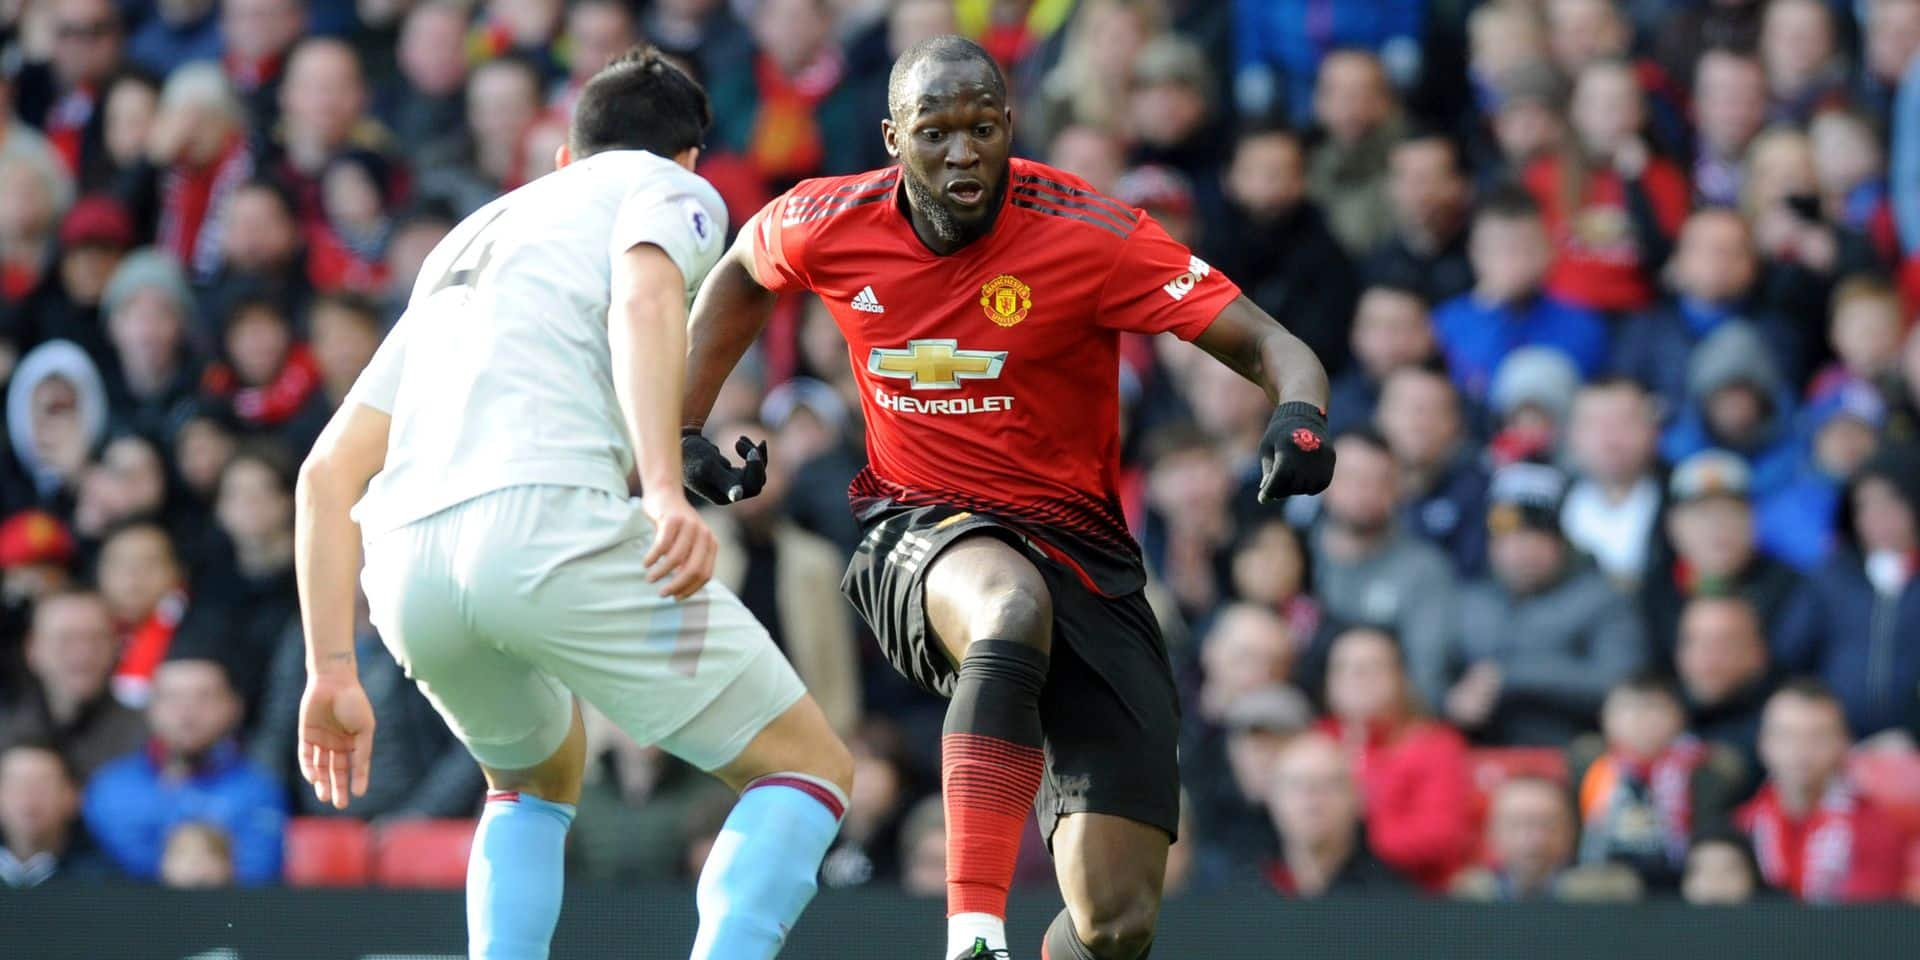 Manchester United's Romelu Lukaku vies for the ball with West Ham's Fabian Balbuena, left, during the English Premier League soccer match between Manchester United and West Ham United at Old Trafford in Manchester, England, Saturday, April 13, 2019. (AP Photo/Rui Vieira)